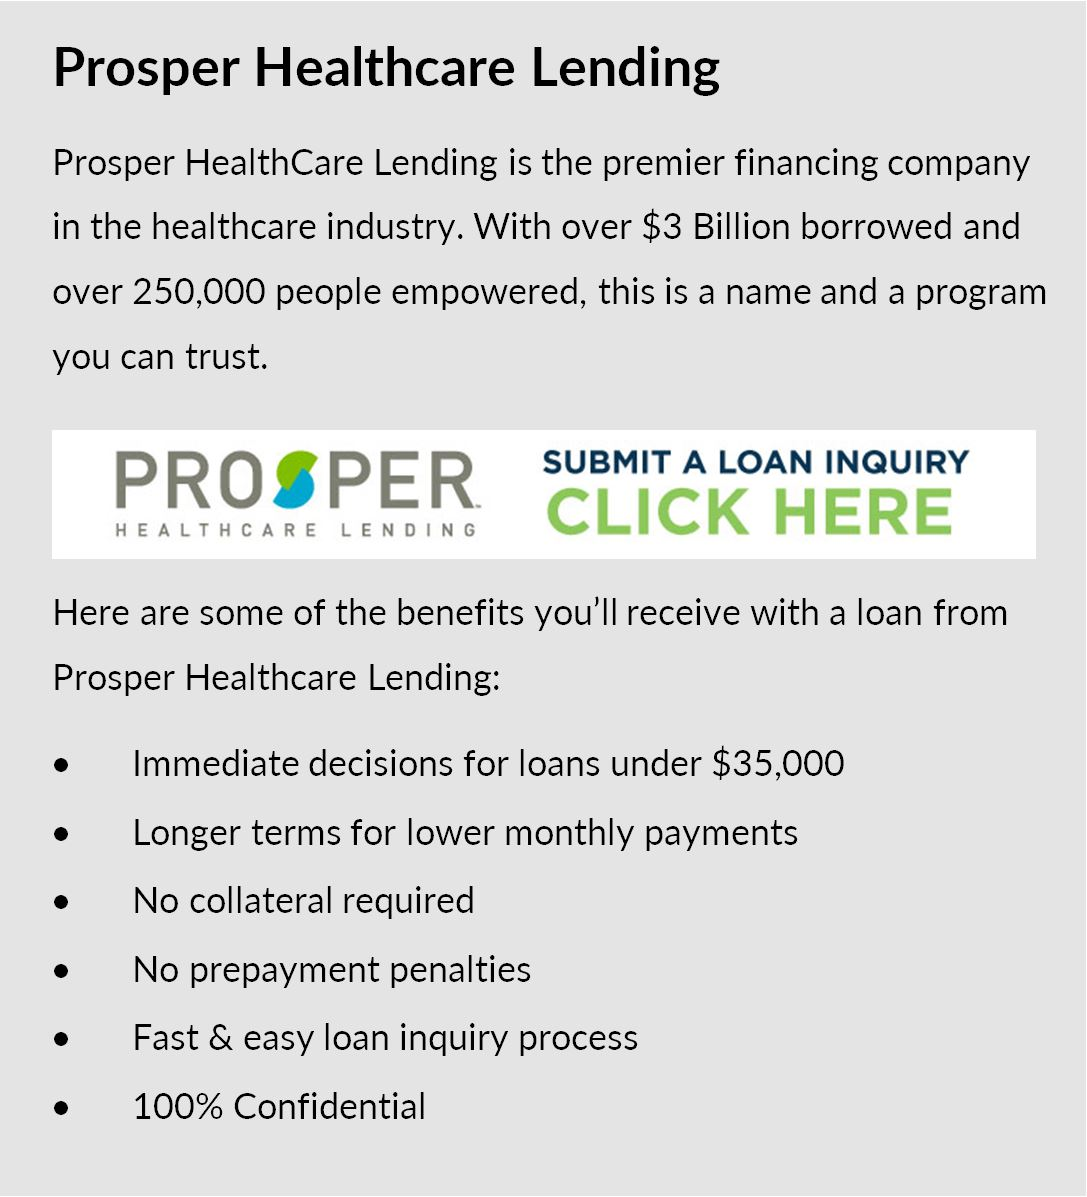 prosper-healthcare-lending-_vertical_zoomed-out-150-percent